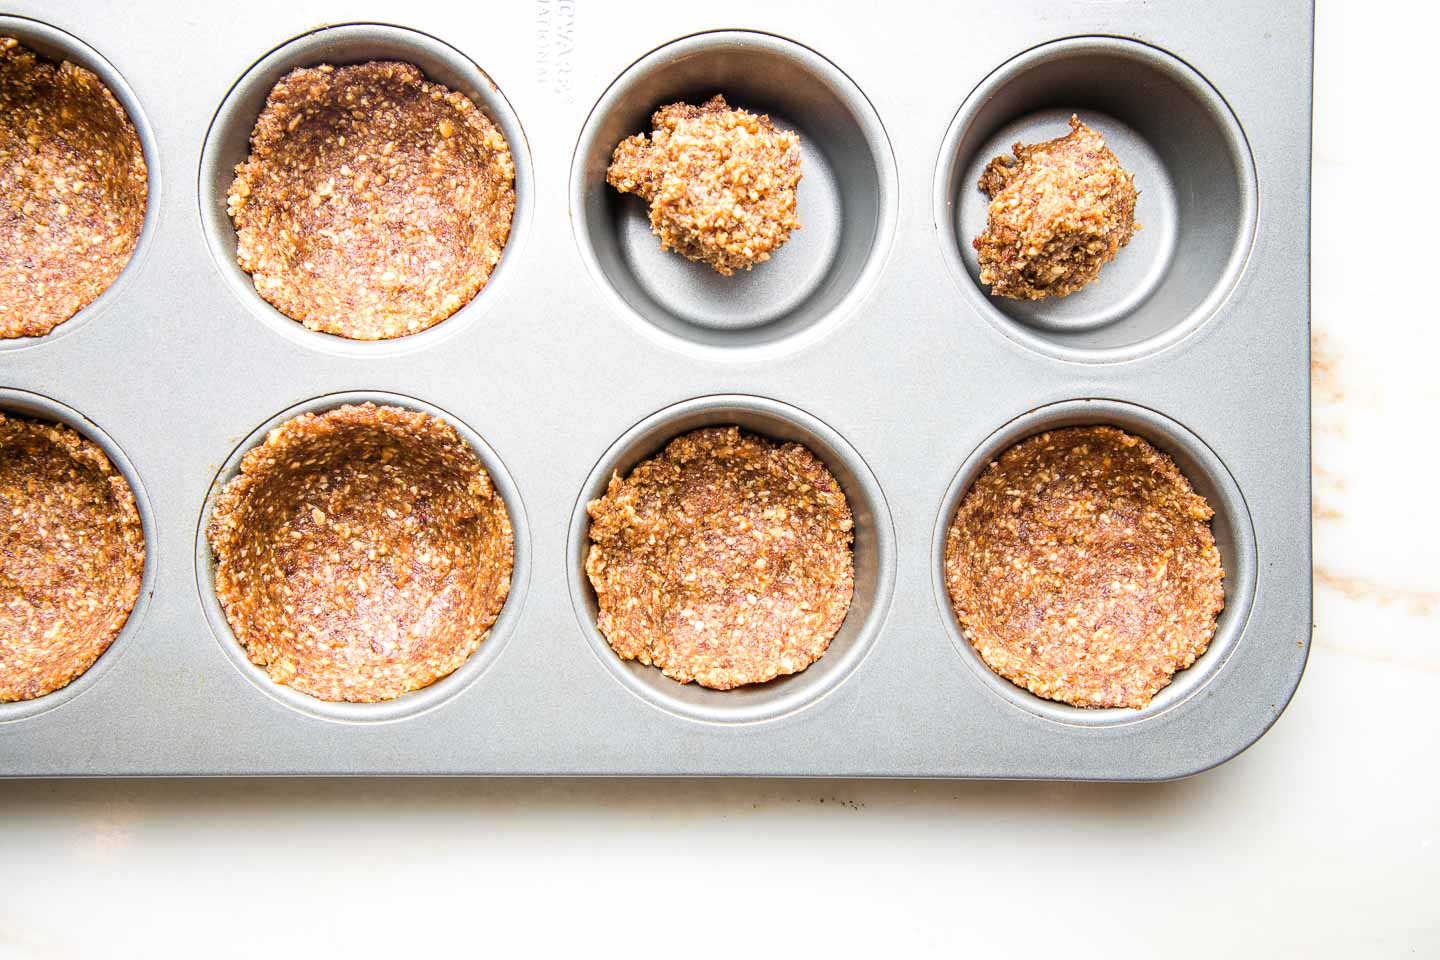 Muffin tin filled with gluten-free crust in heaps and some are pressed flat against the bottom and up the sides.